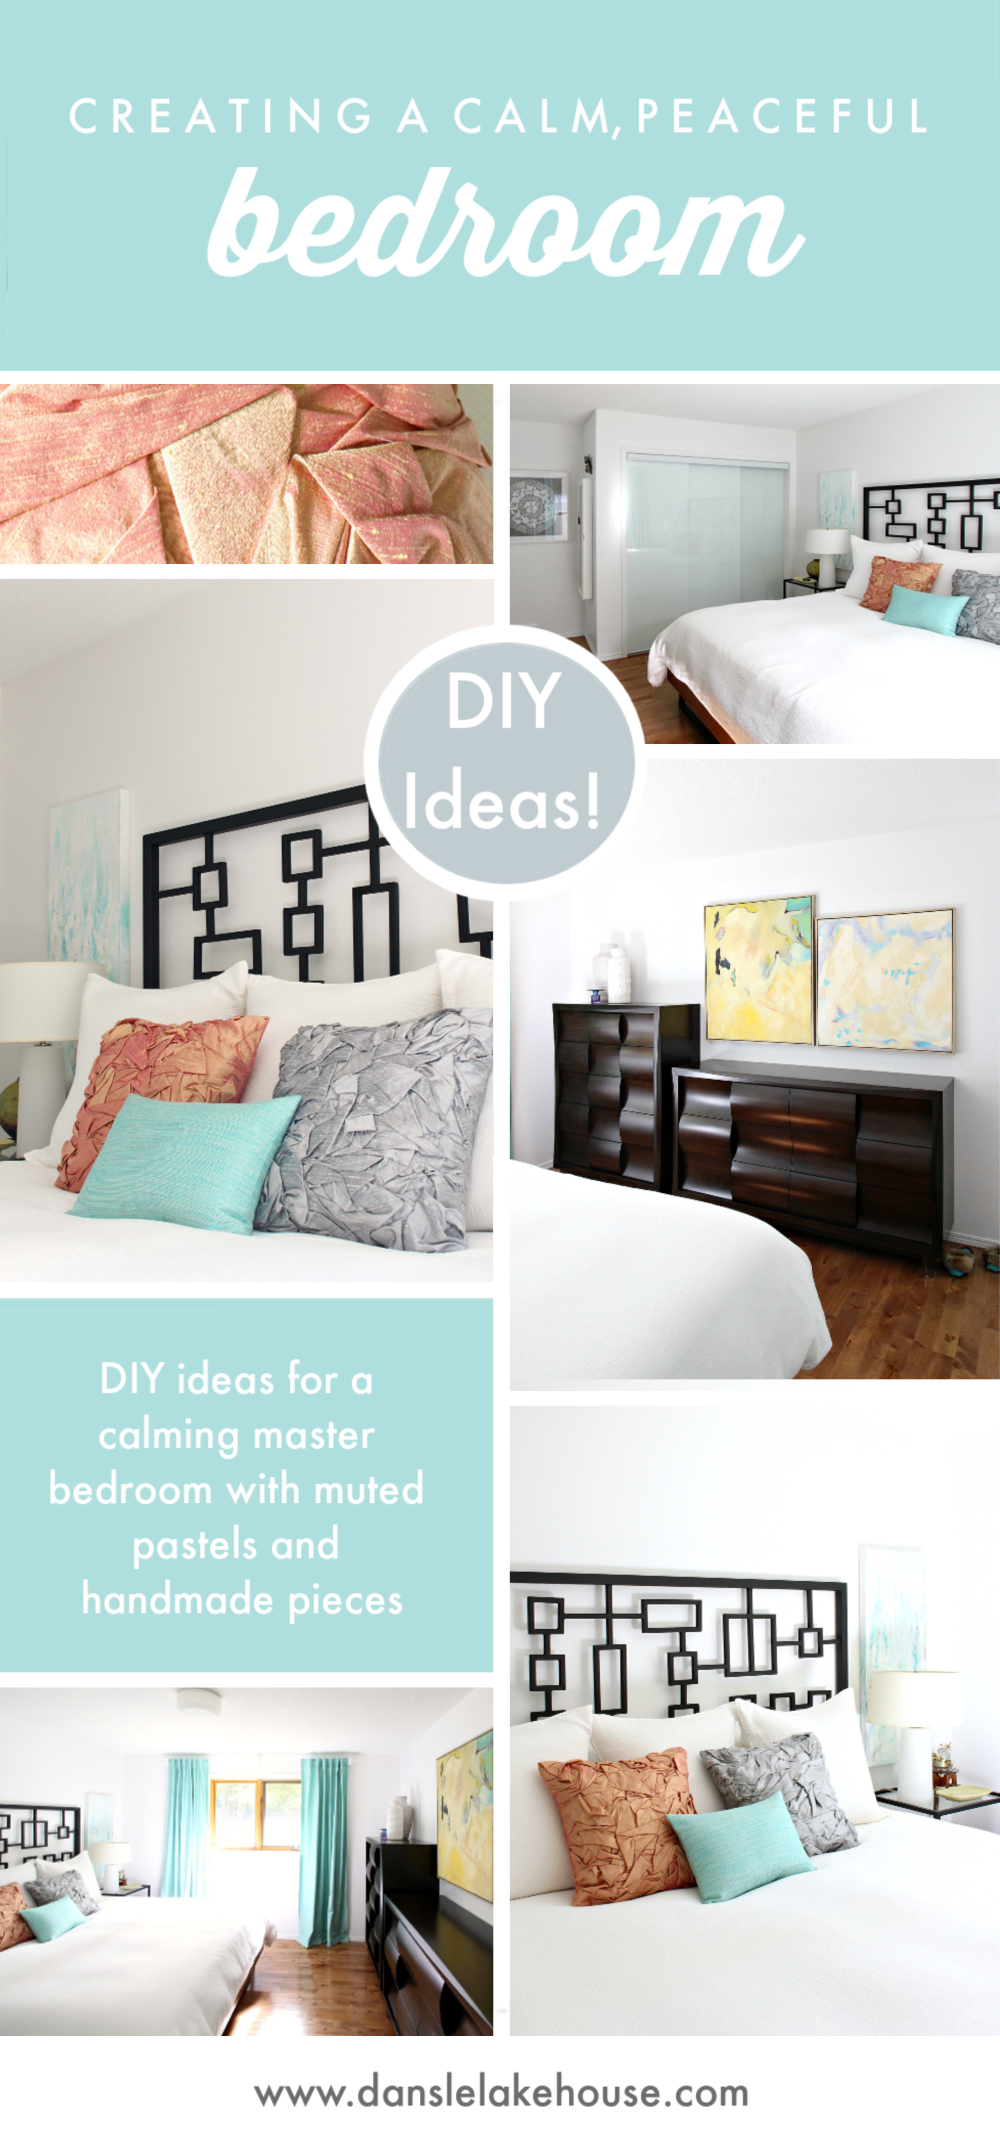 Peaceful Bedroom Decor Makeover with Muted Pastels